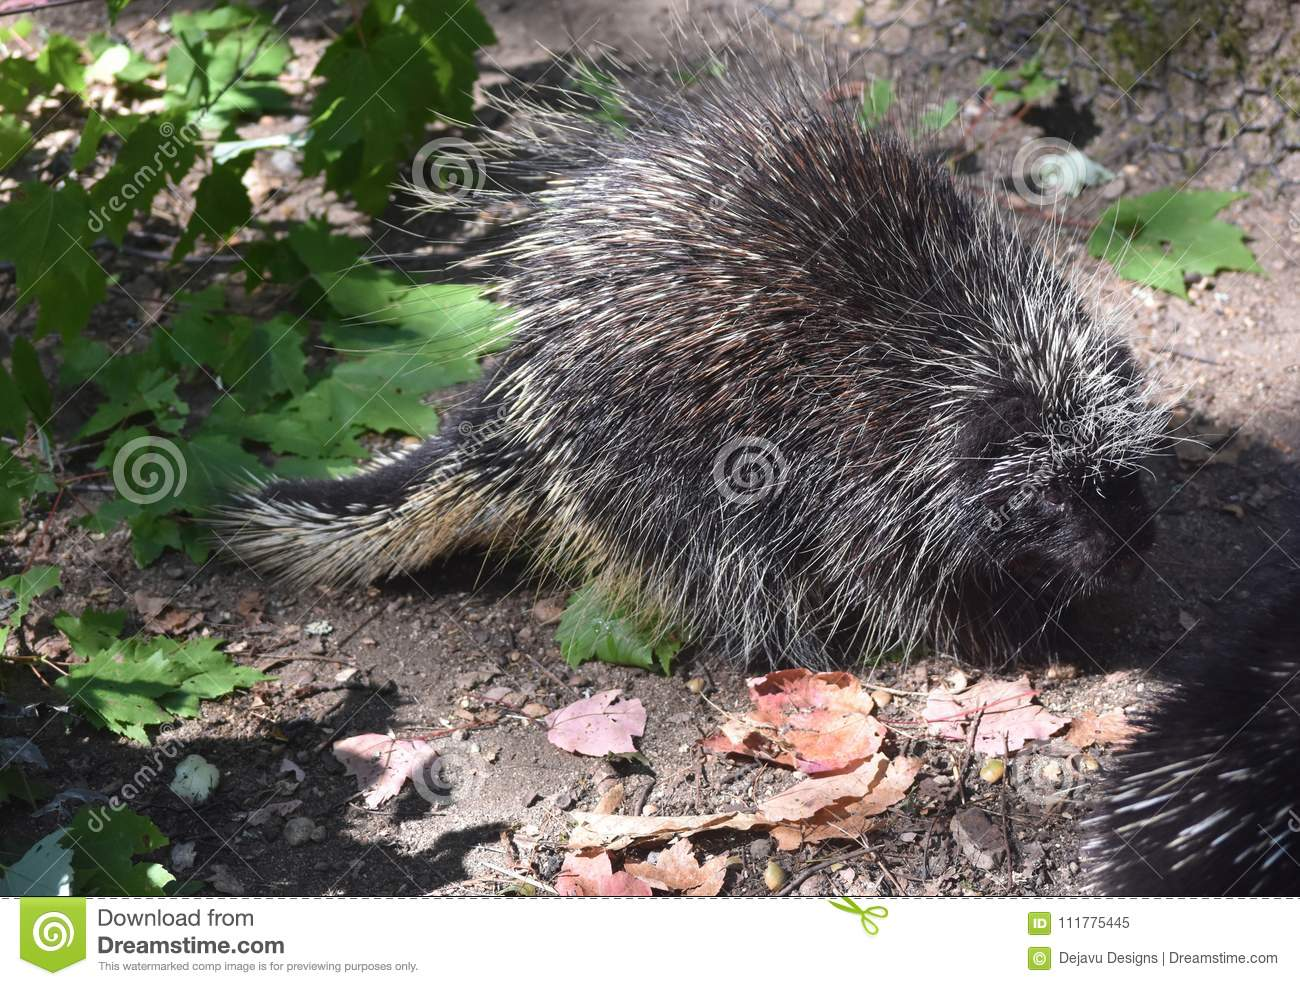 Wild north american porcupine walking past leaves